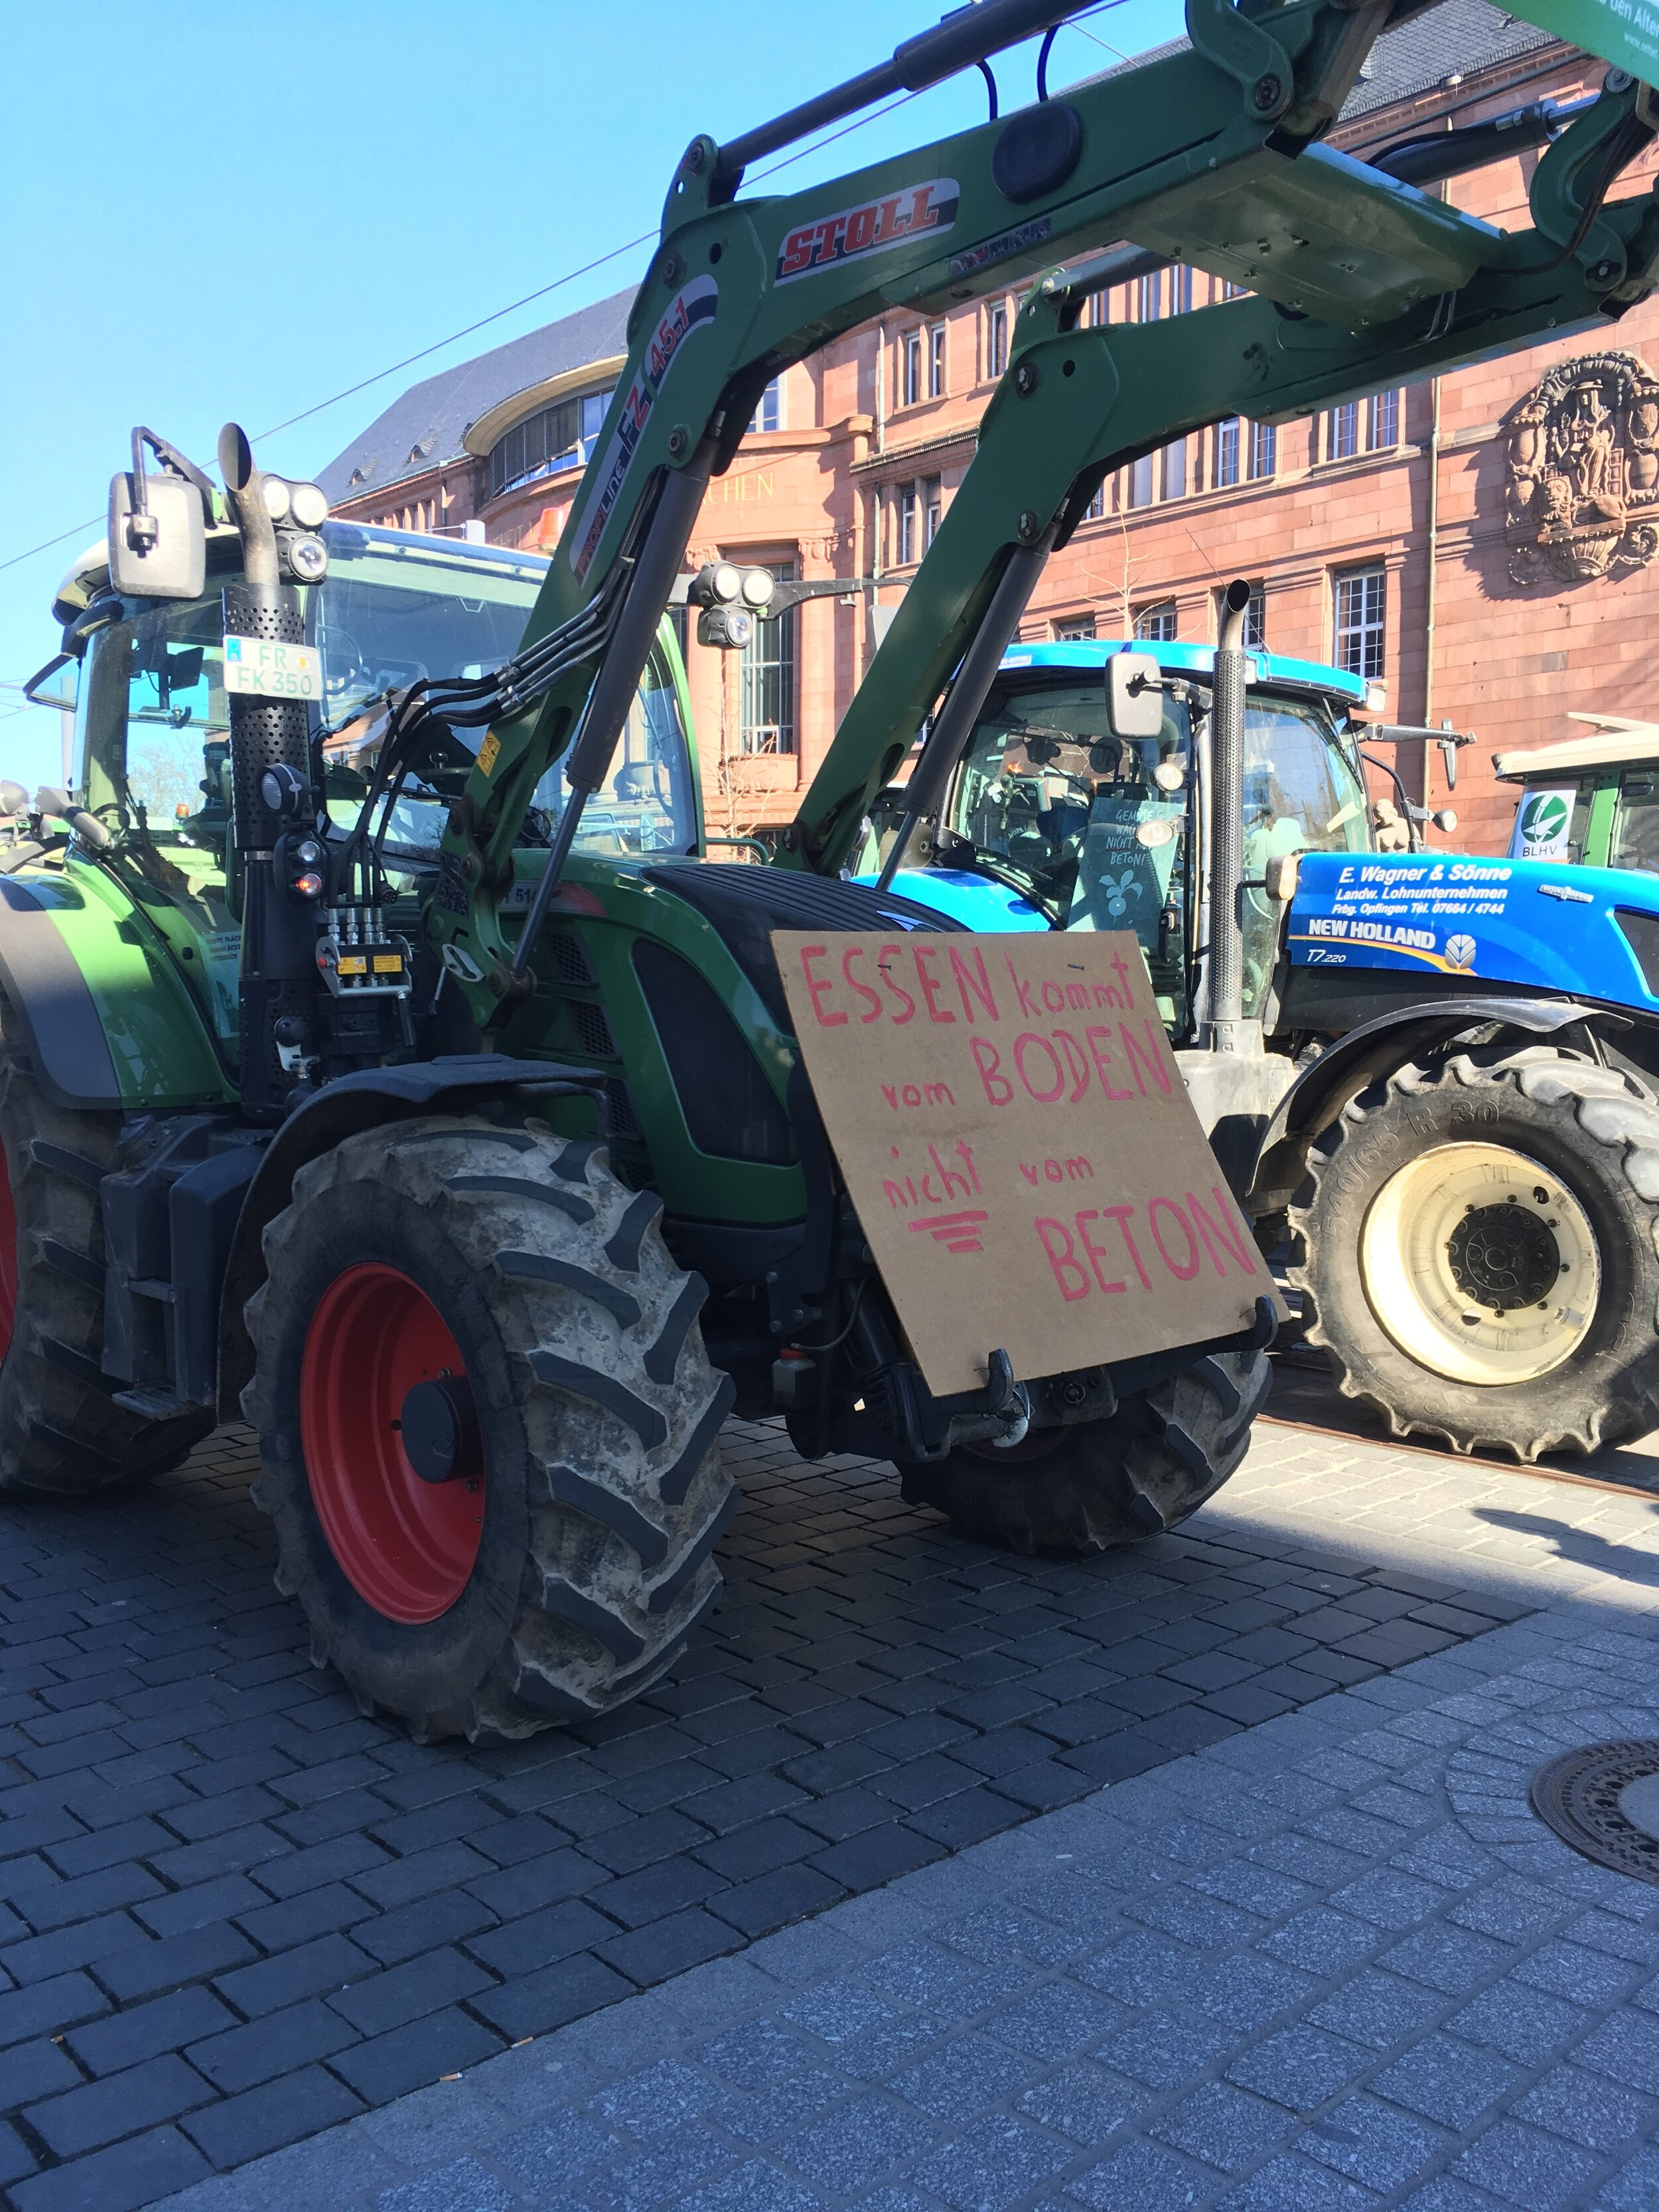 Pro-farmer slogans are paraded through the center of town. (Photo: Brendan Reilly)